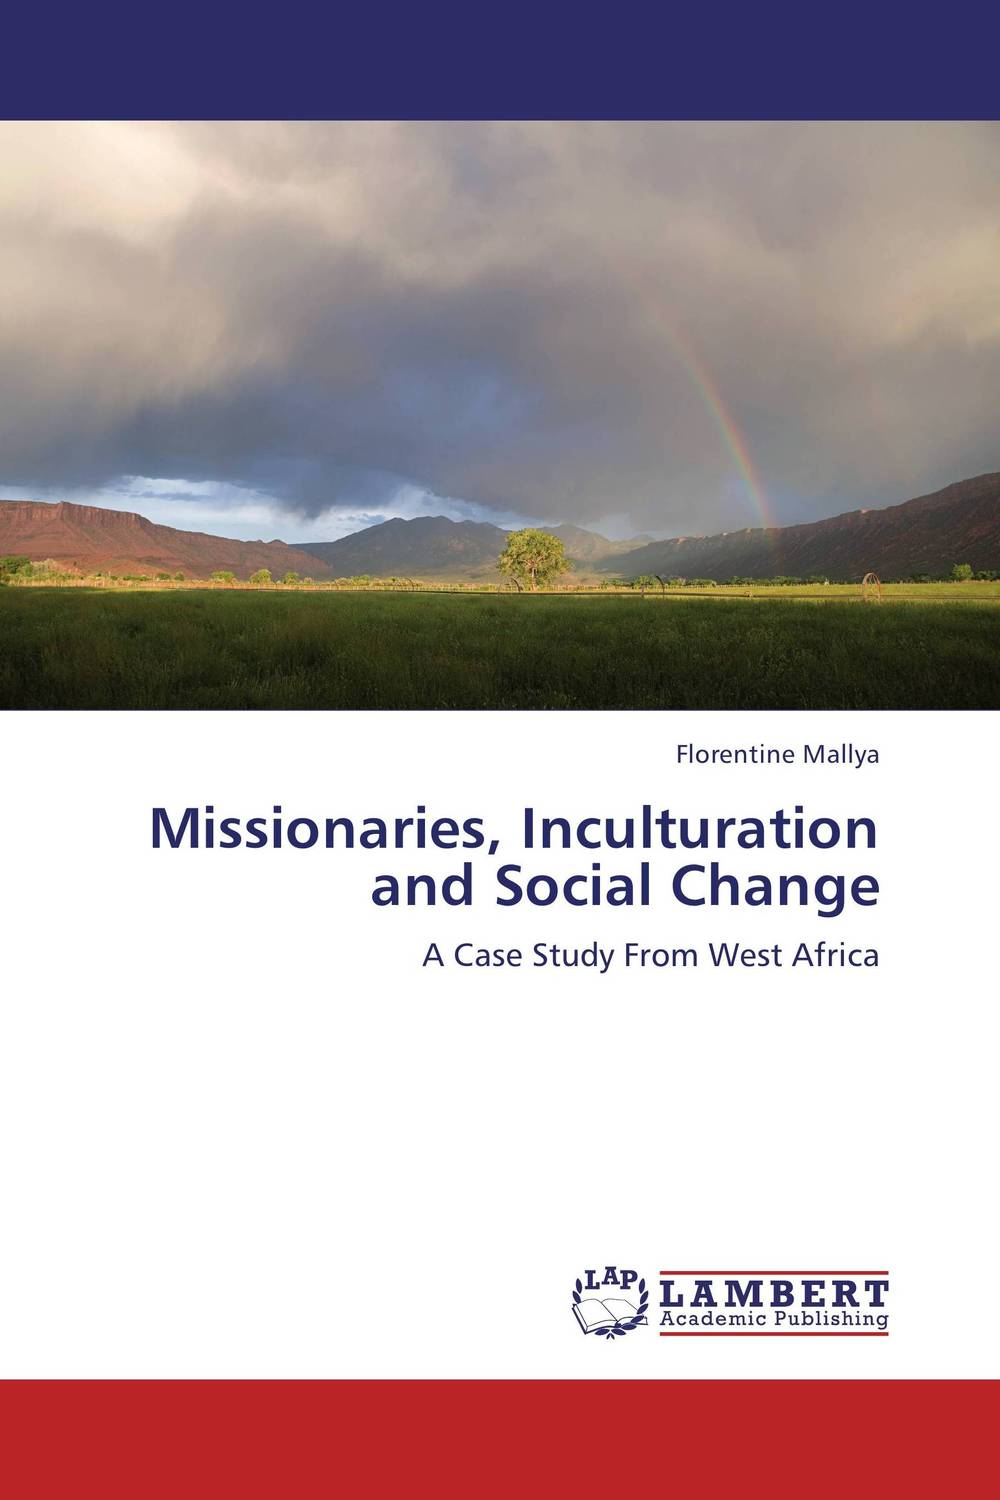 Missionaries, Inculturation and Social Change